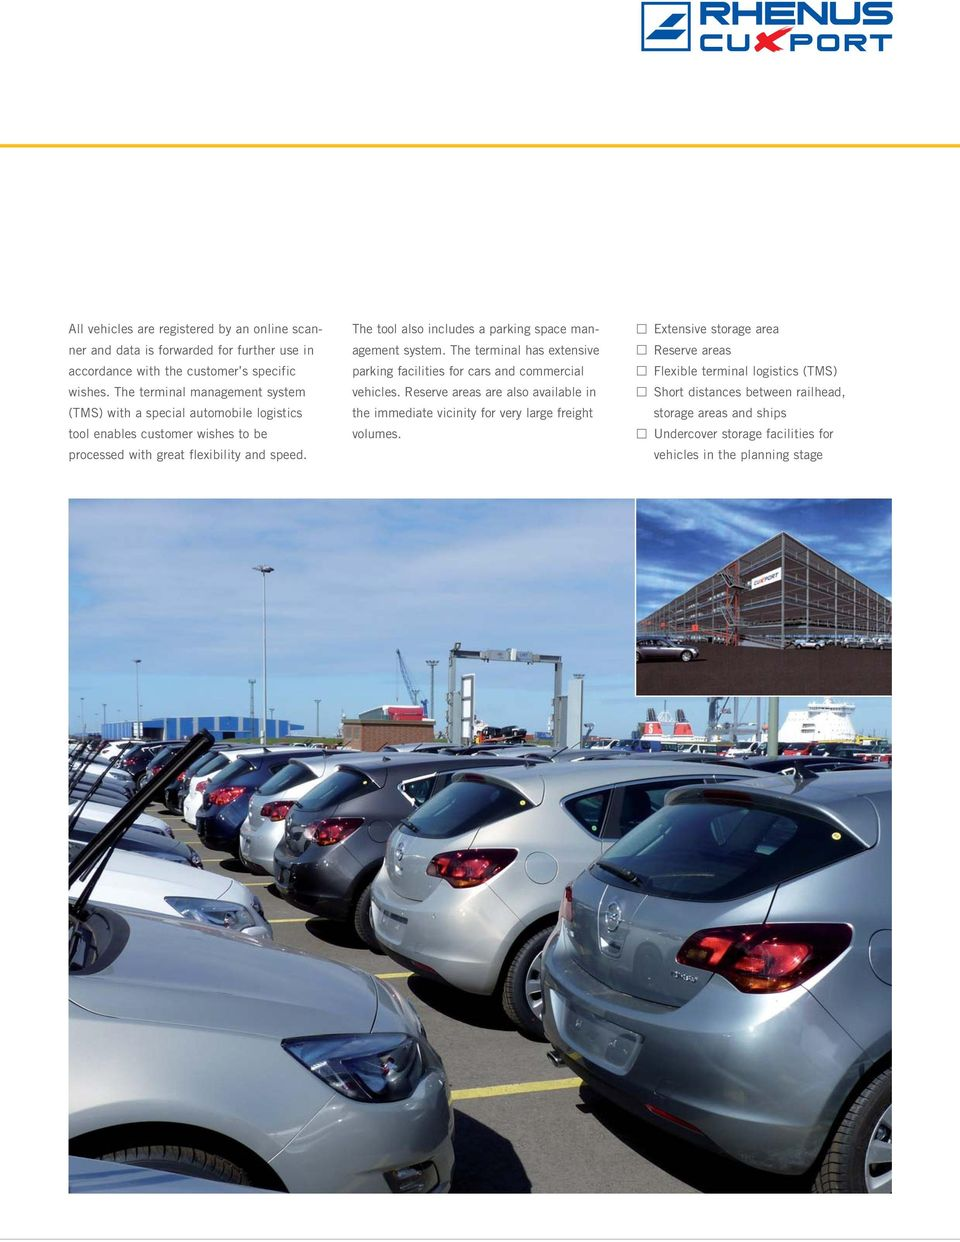 The tool also includes a parking space management system. The terminal has extensive parking facilities for cars and commercial vehicles.